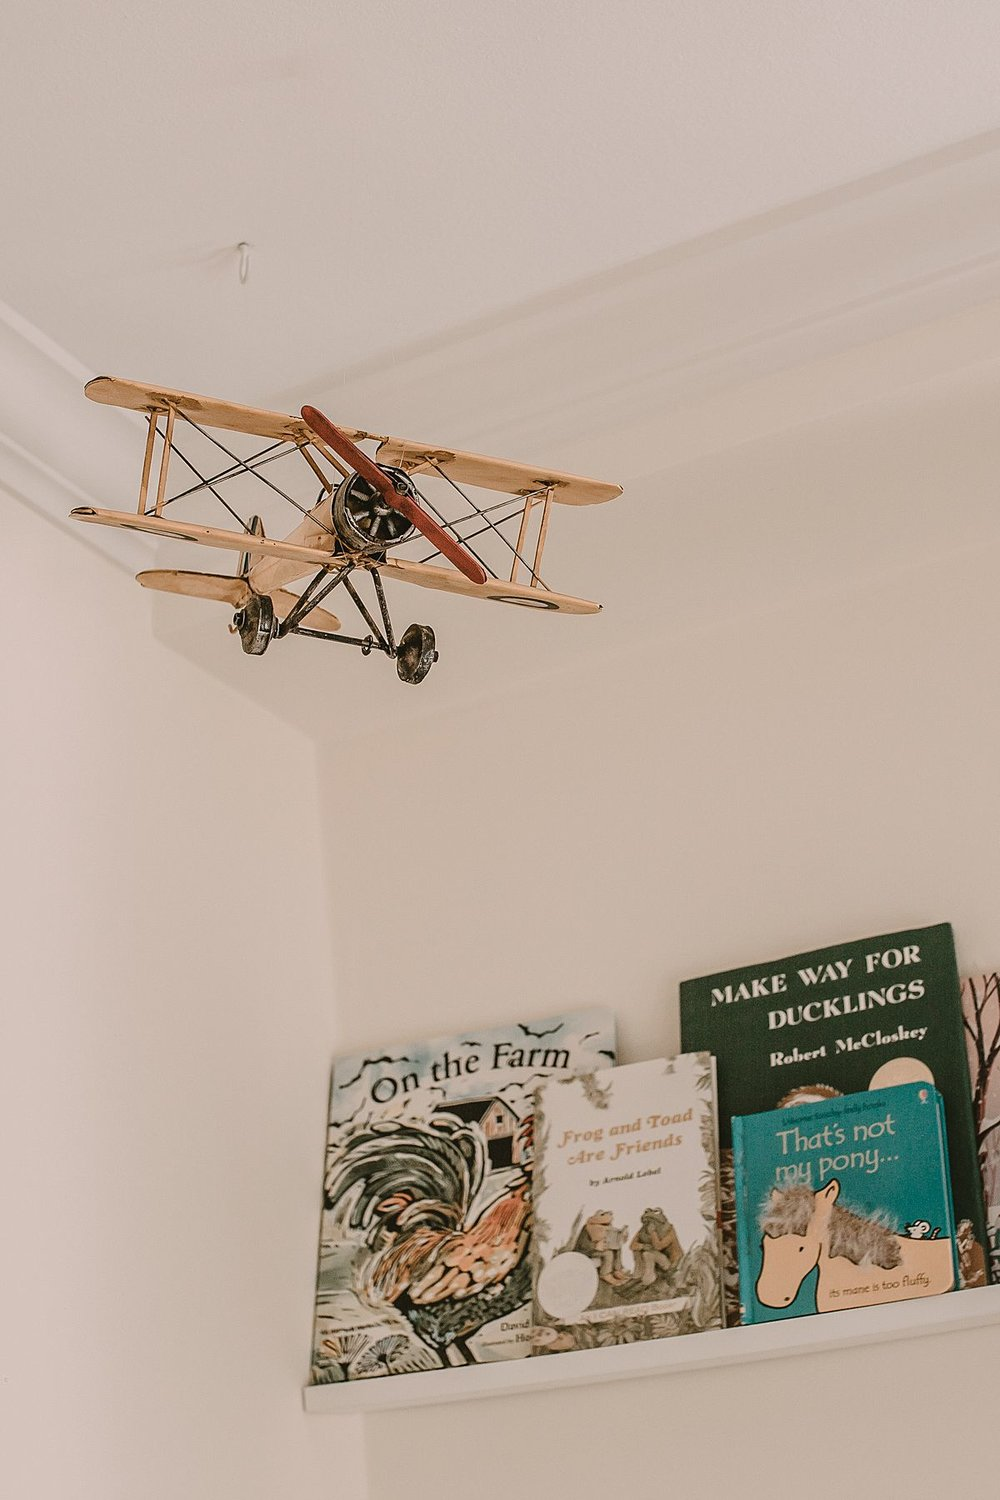 bedroom details for newborn sister comprising lovely child books and hanging airplane. photo by krystil mcdowall